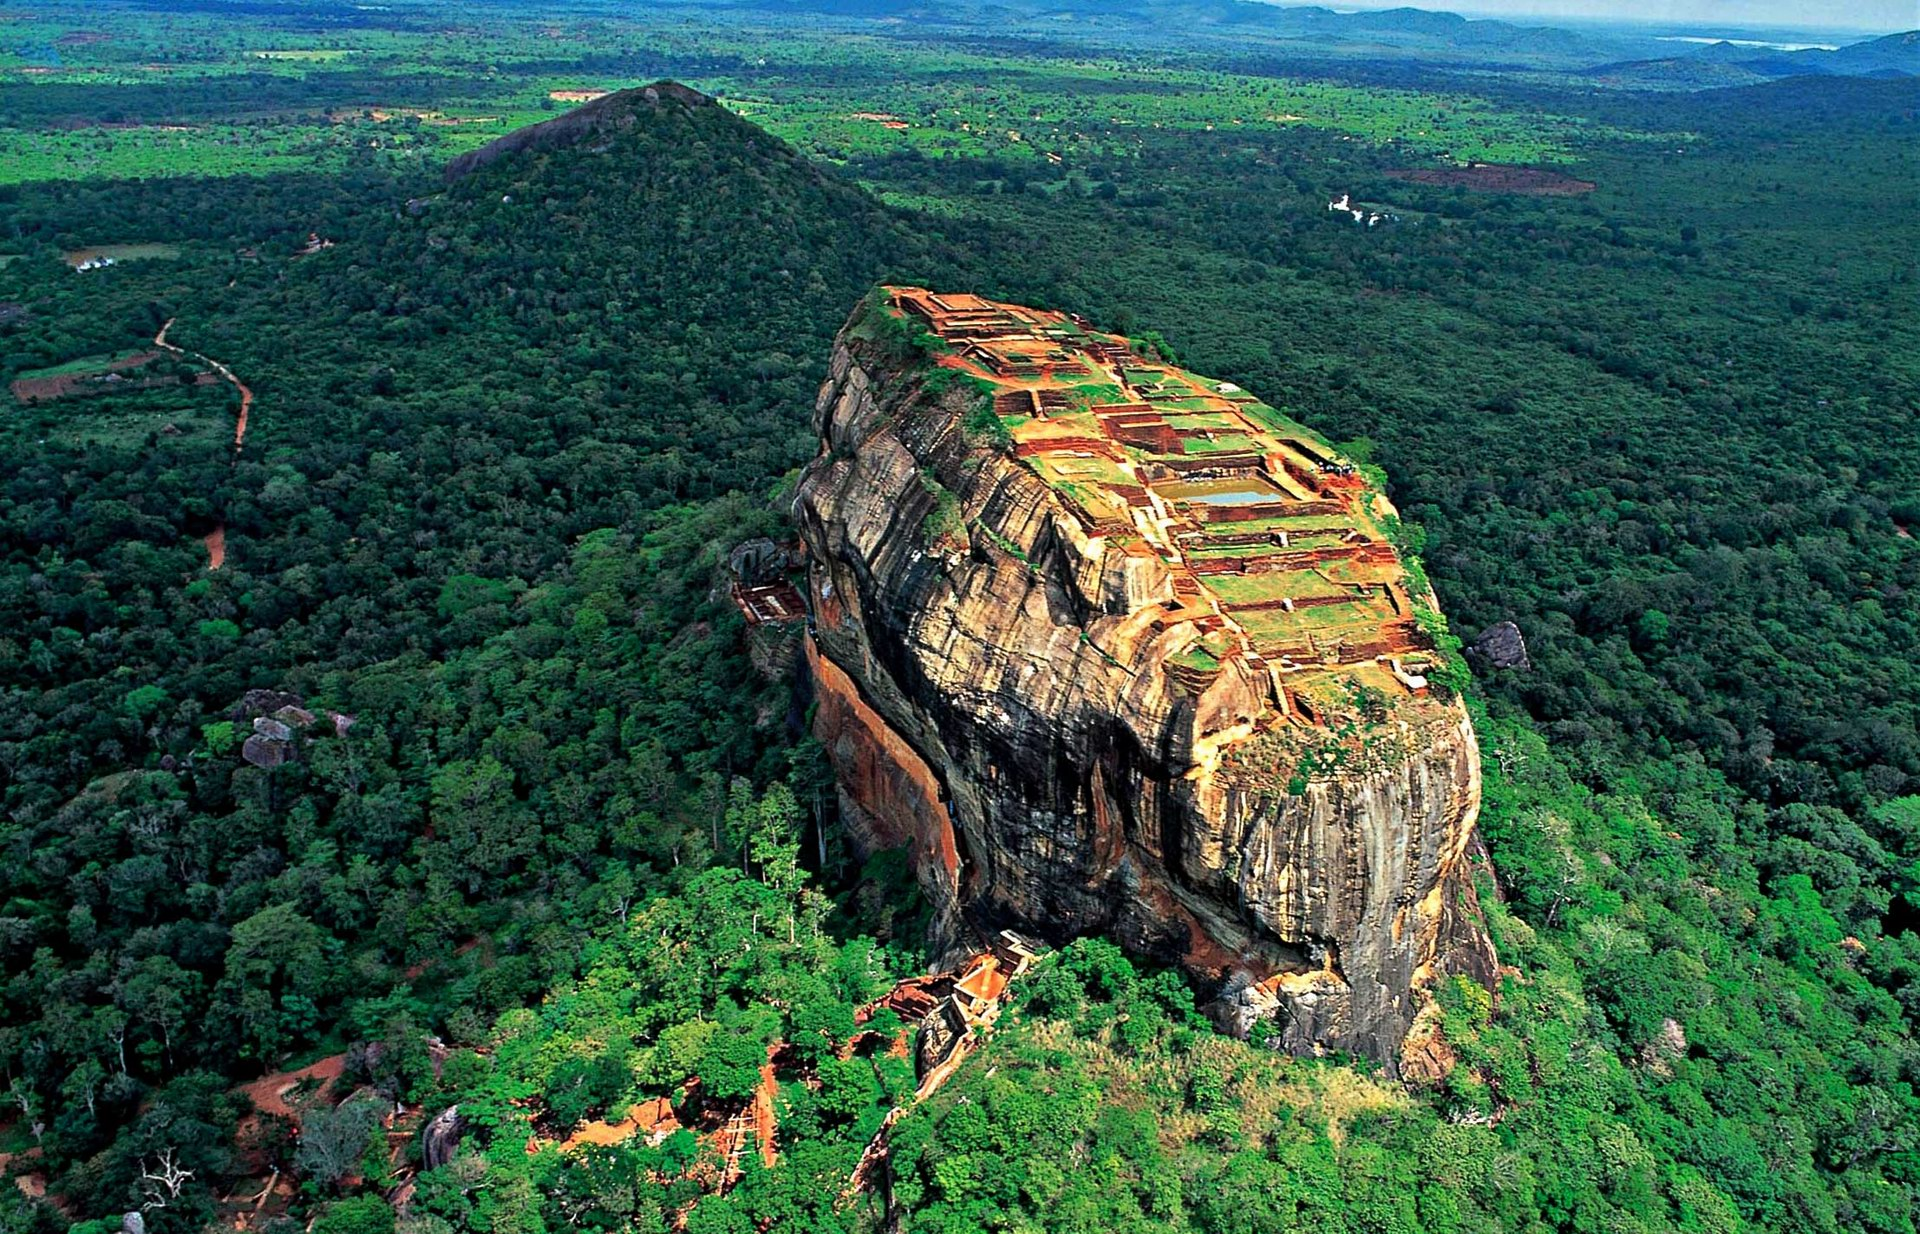 An Aerial view of the famous Sigiriya, Sri Lanka